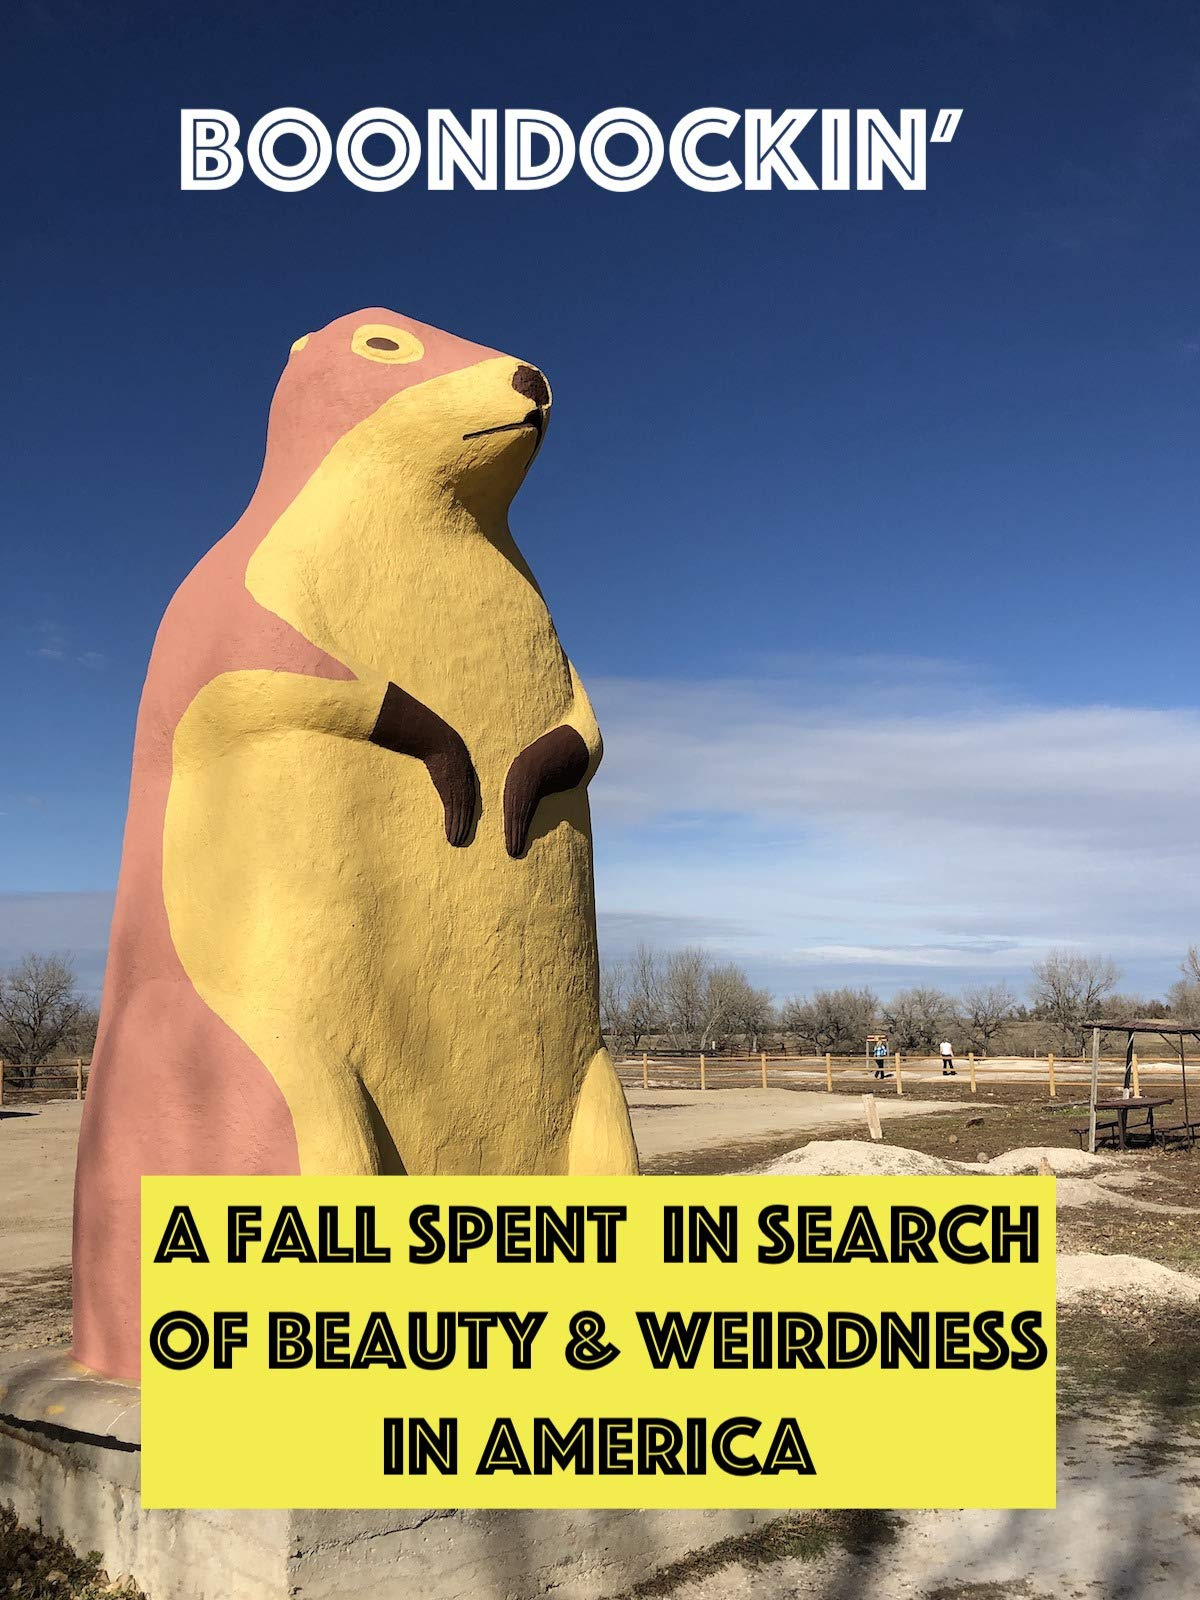 Boondockin' - a Fall spent in search of Beauty & Weirdness in America